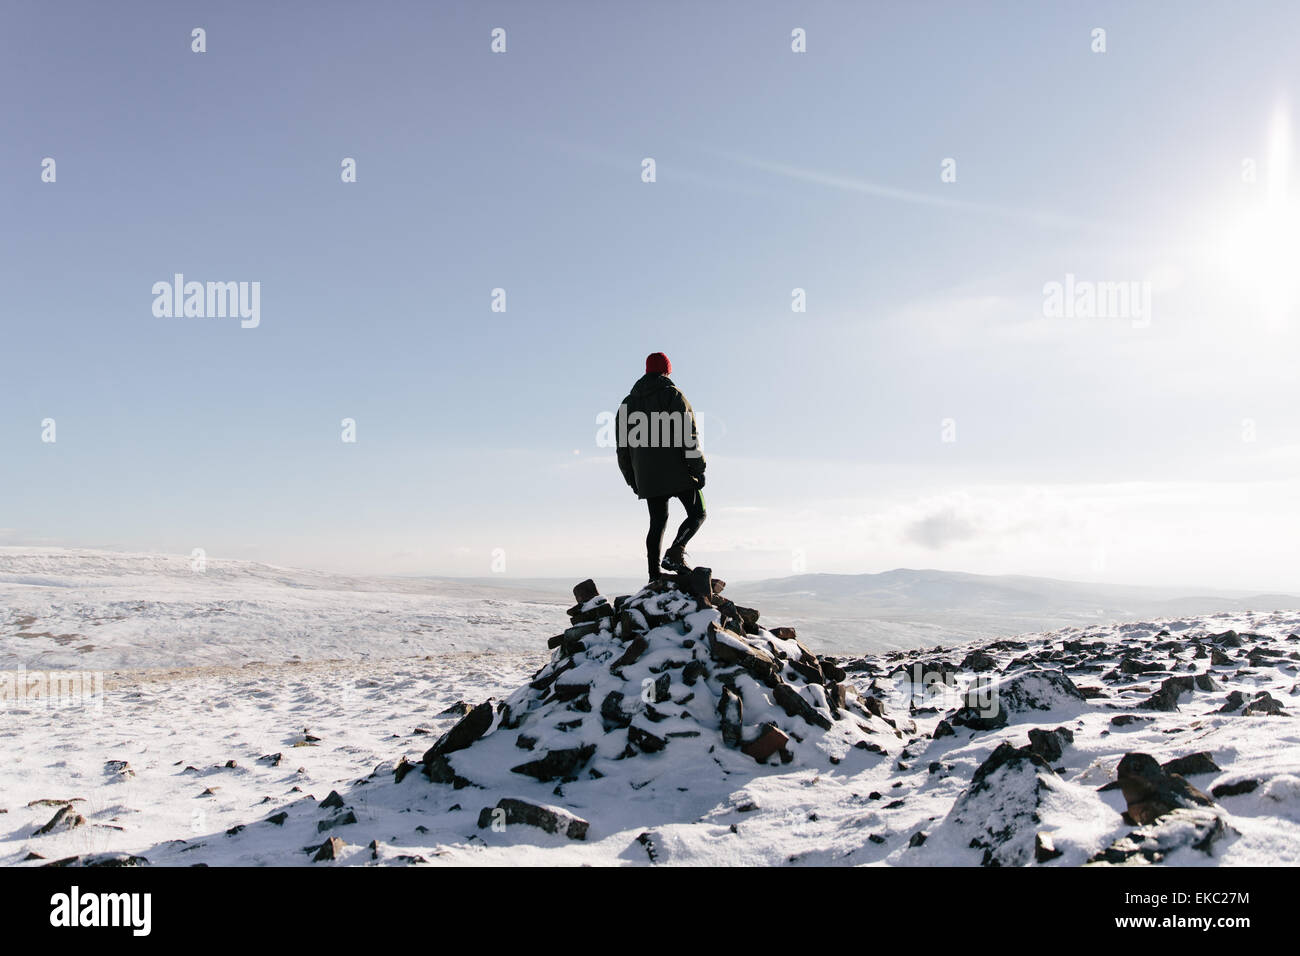 Man standing on outcrop, Llyn y Fan Fach, Brecon Beacons, Wales - Stock Image